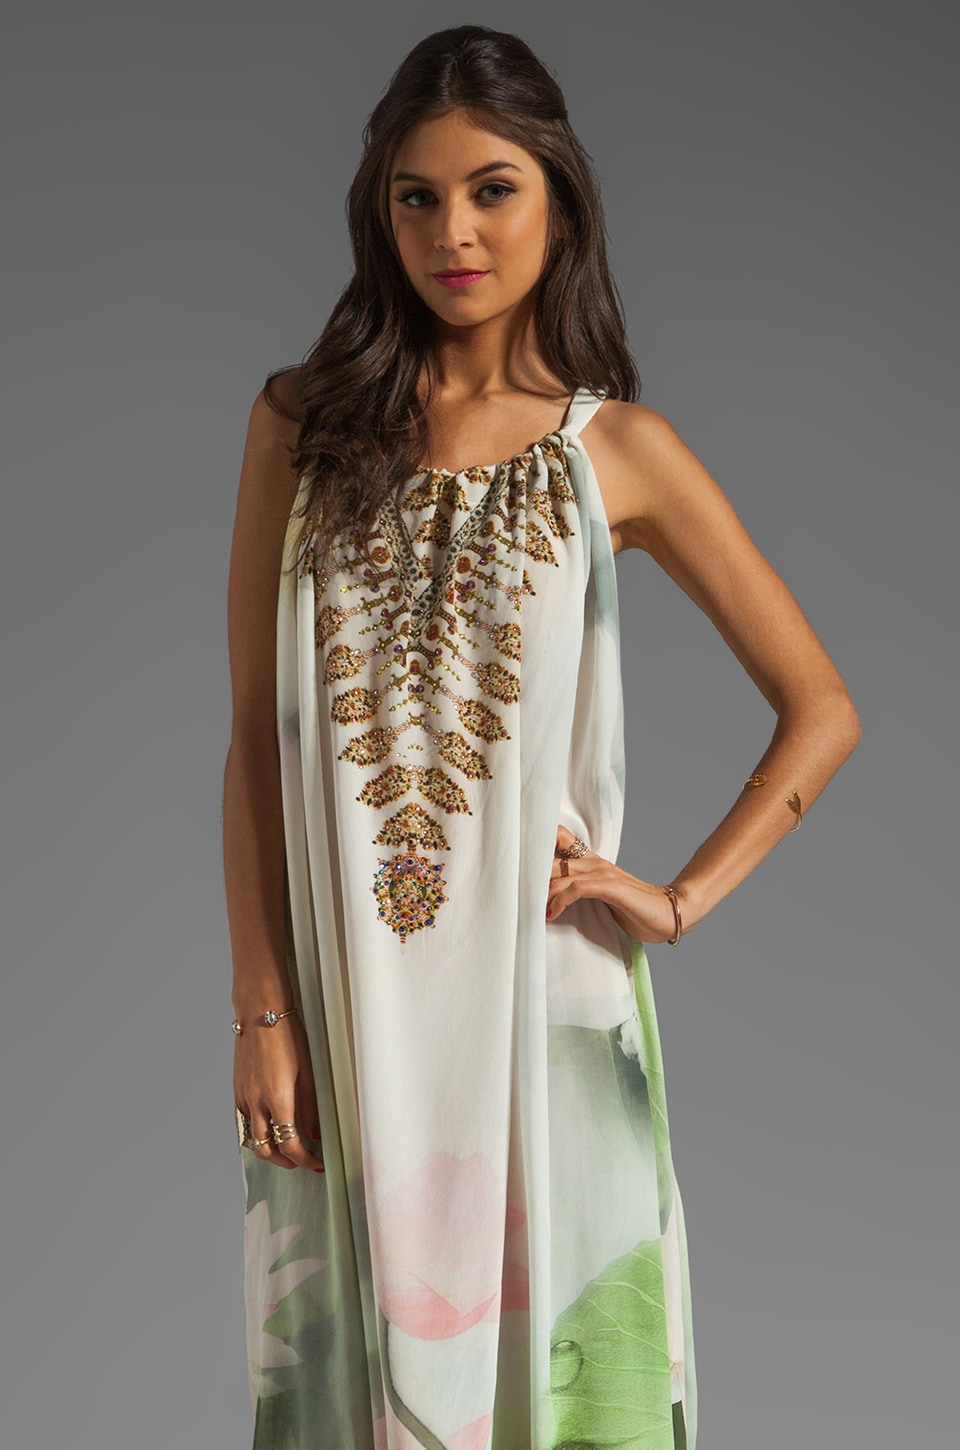 Camilla Drawstring Maxi Dress in Springtime Love